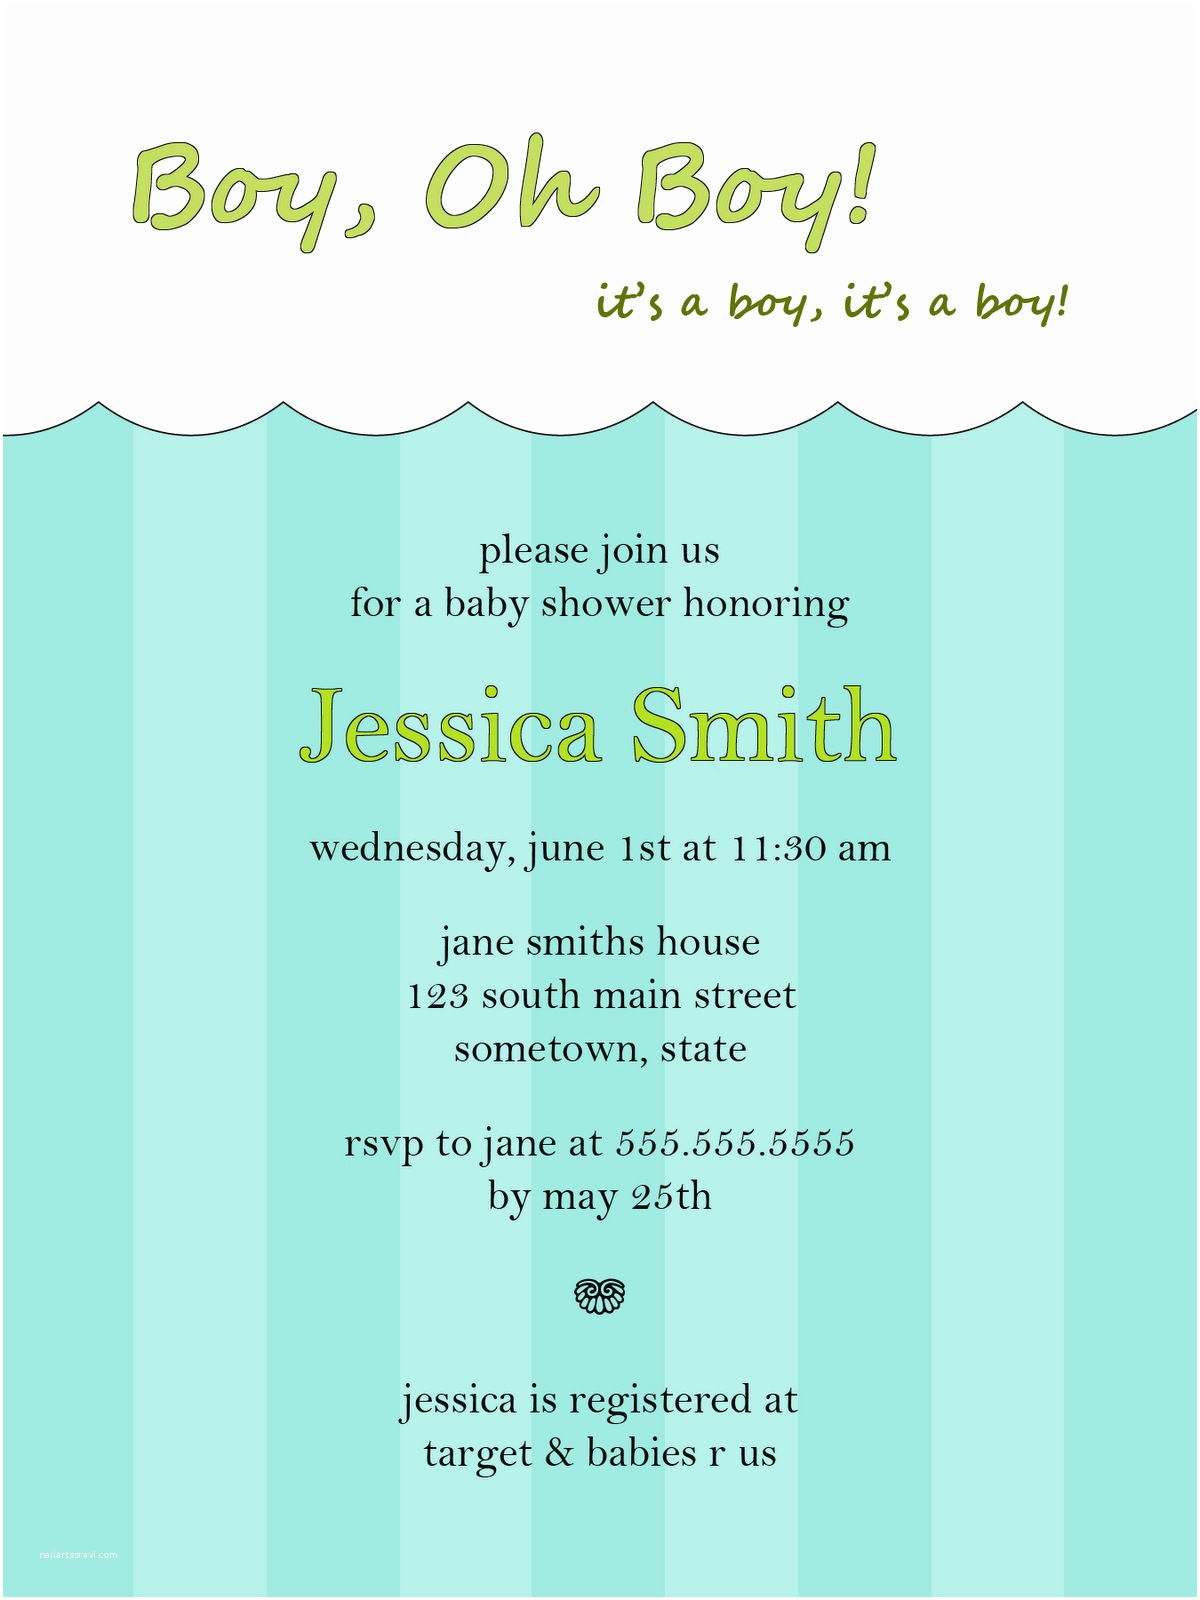 Baby Shower Invitations for Boys Free Printable Baby Shower Invitations for Boys